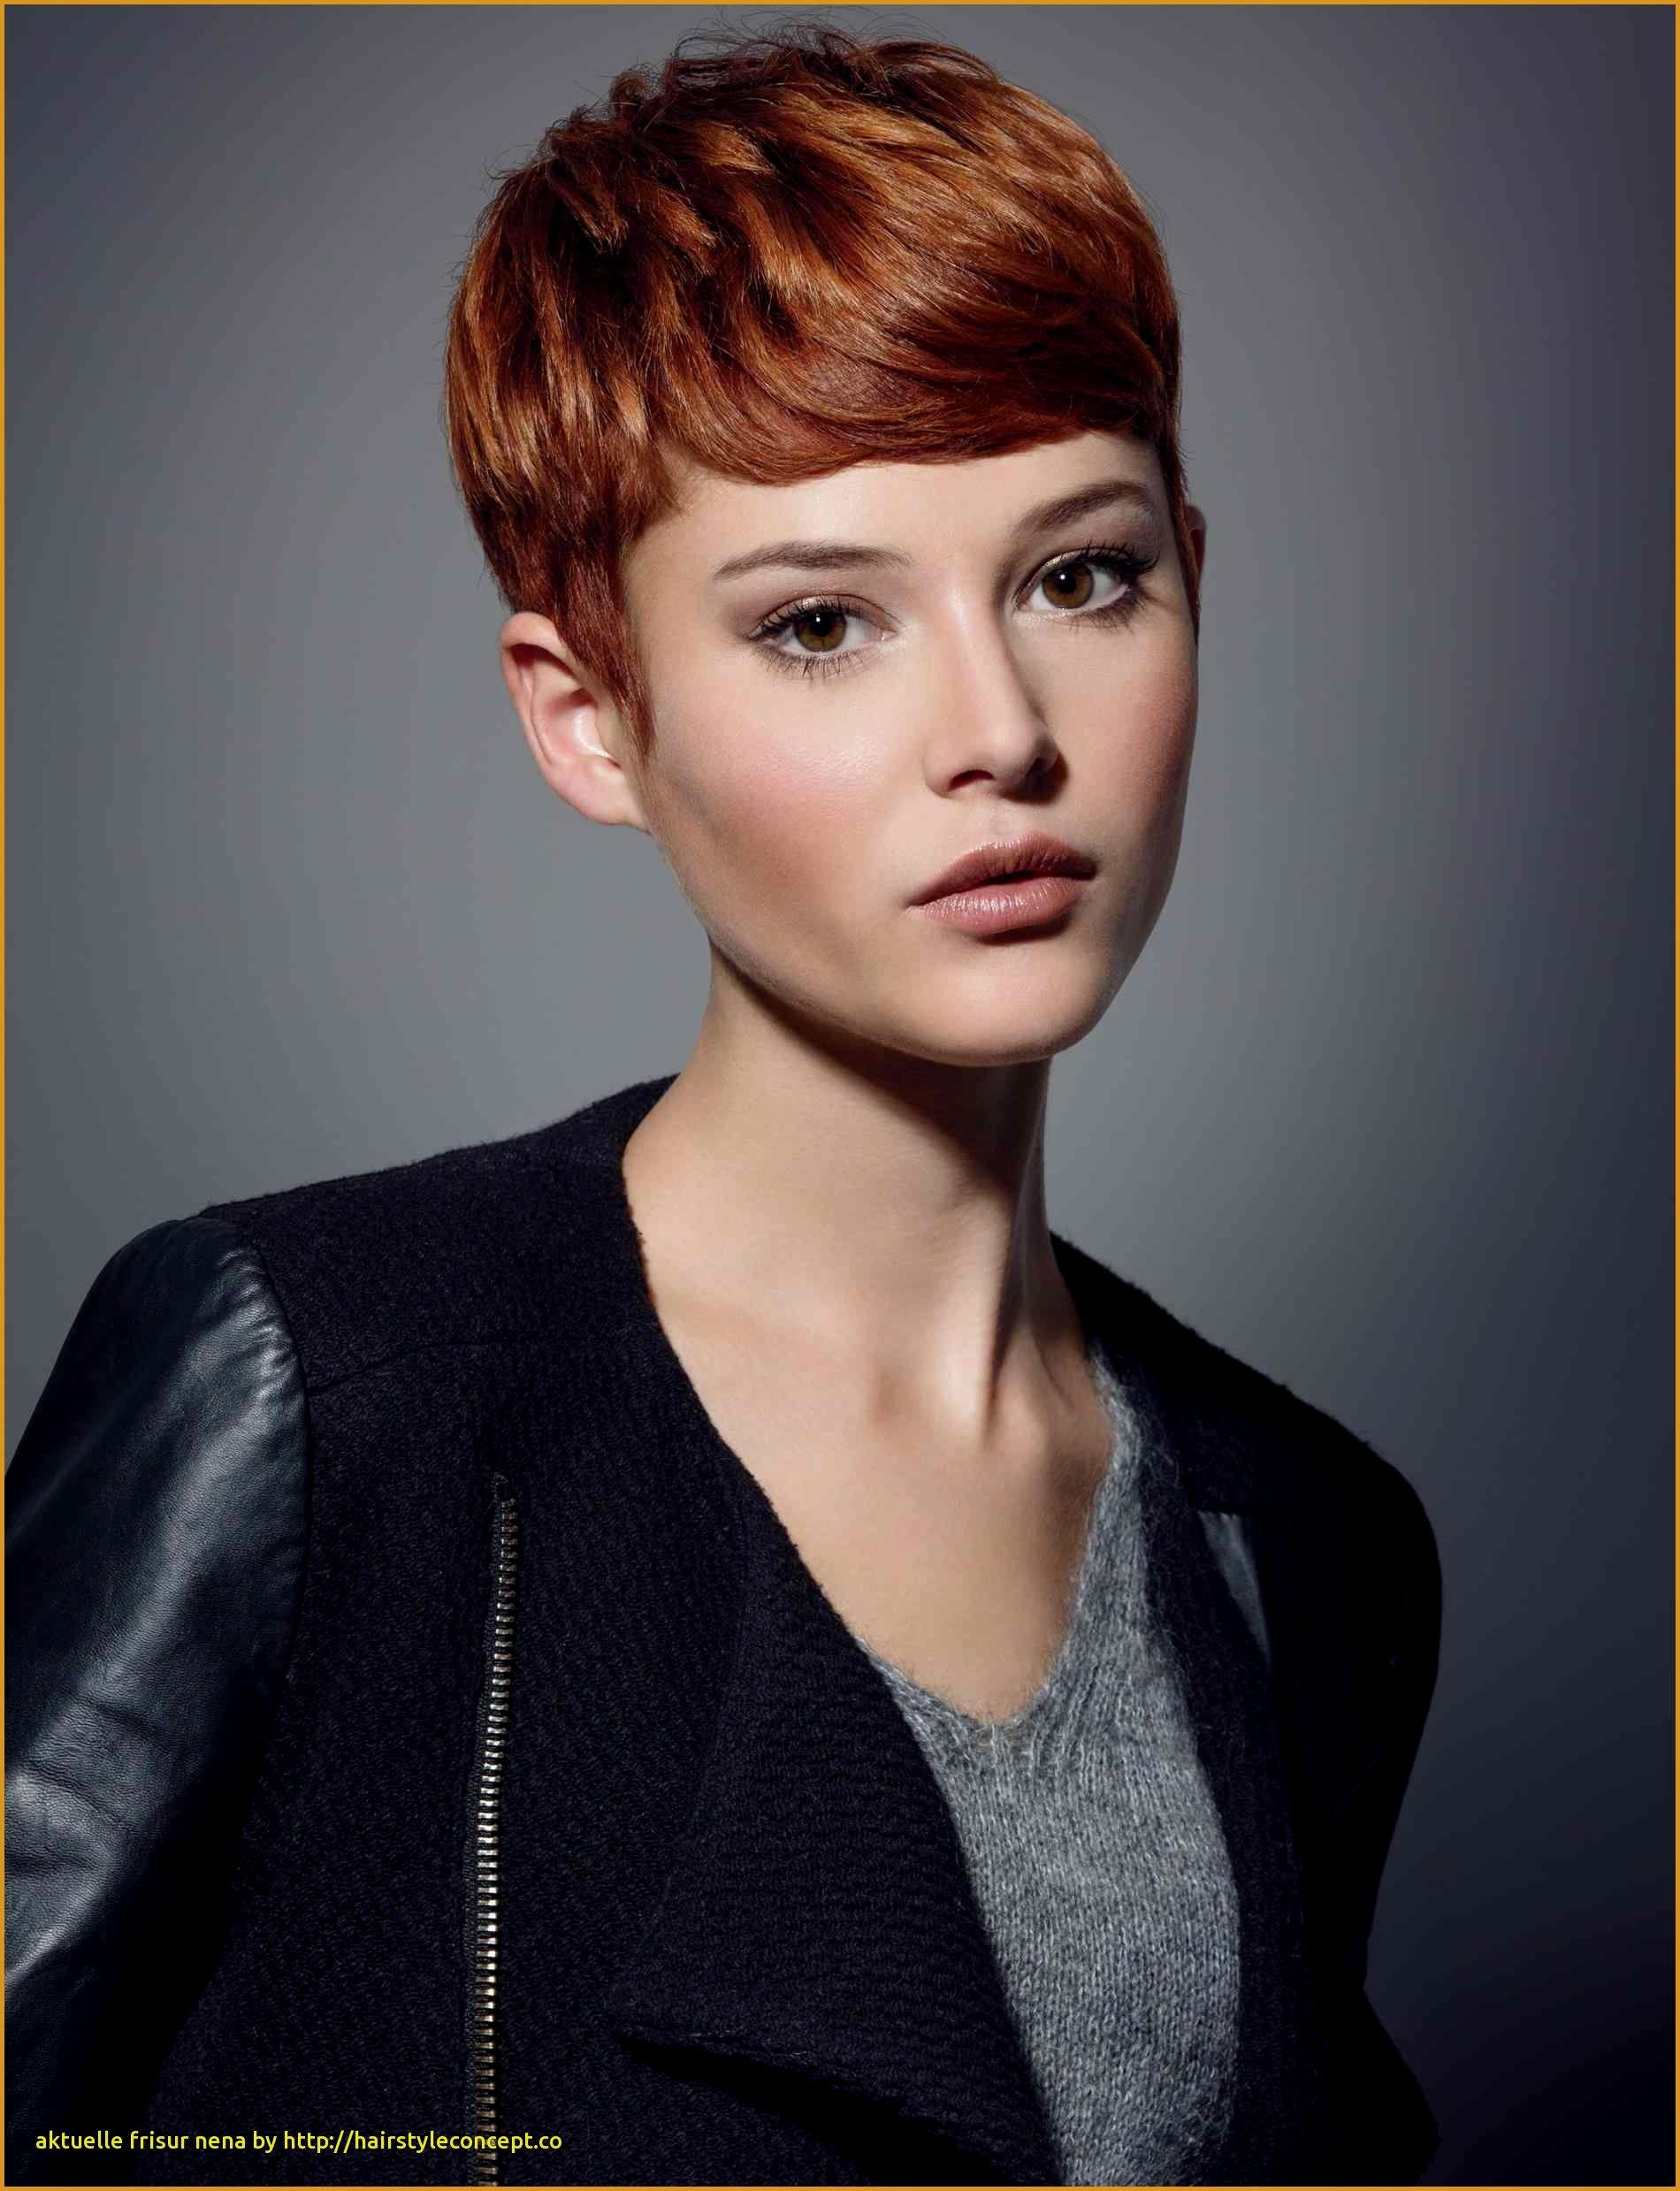 best of current hairstyles design-Cool Current hairstyles image